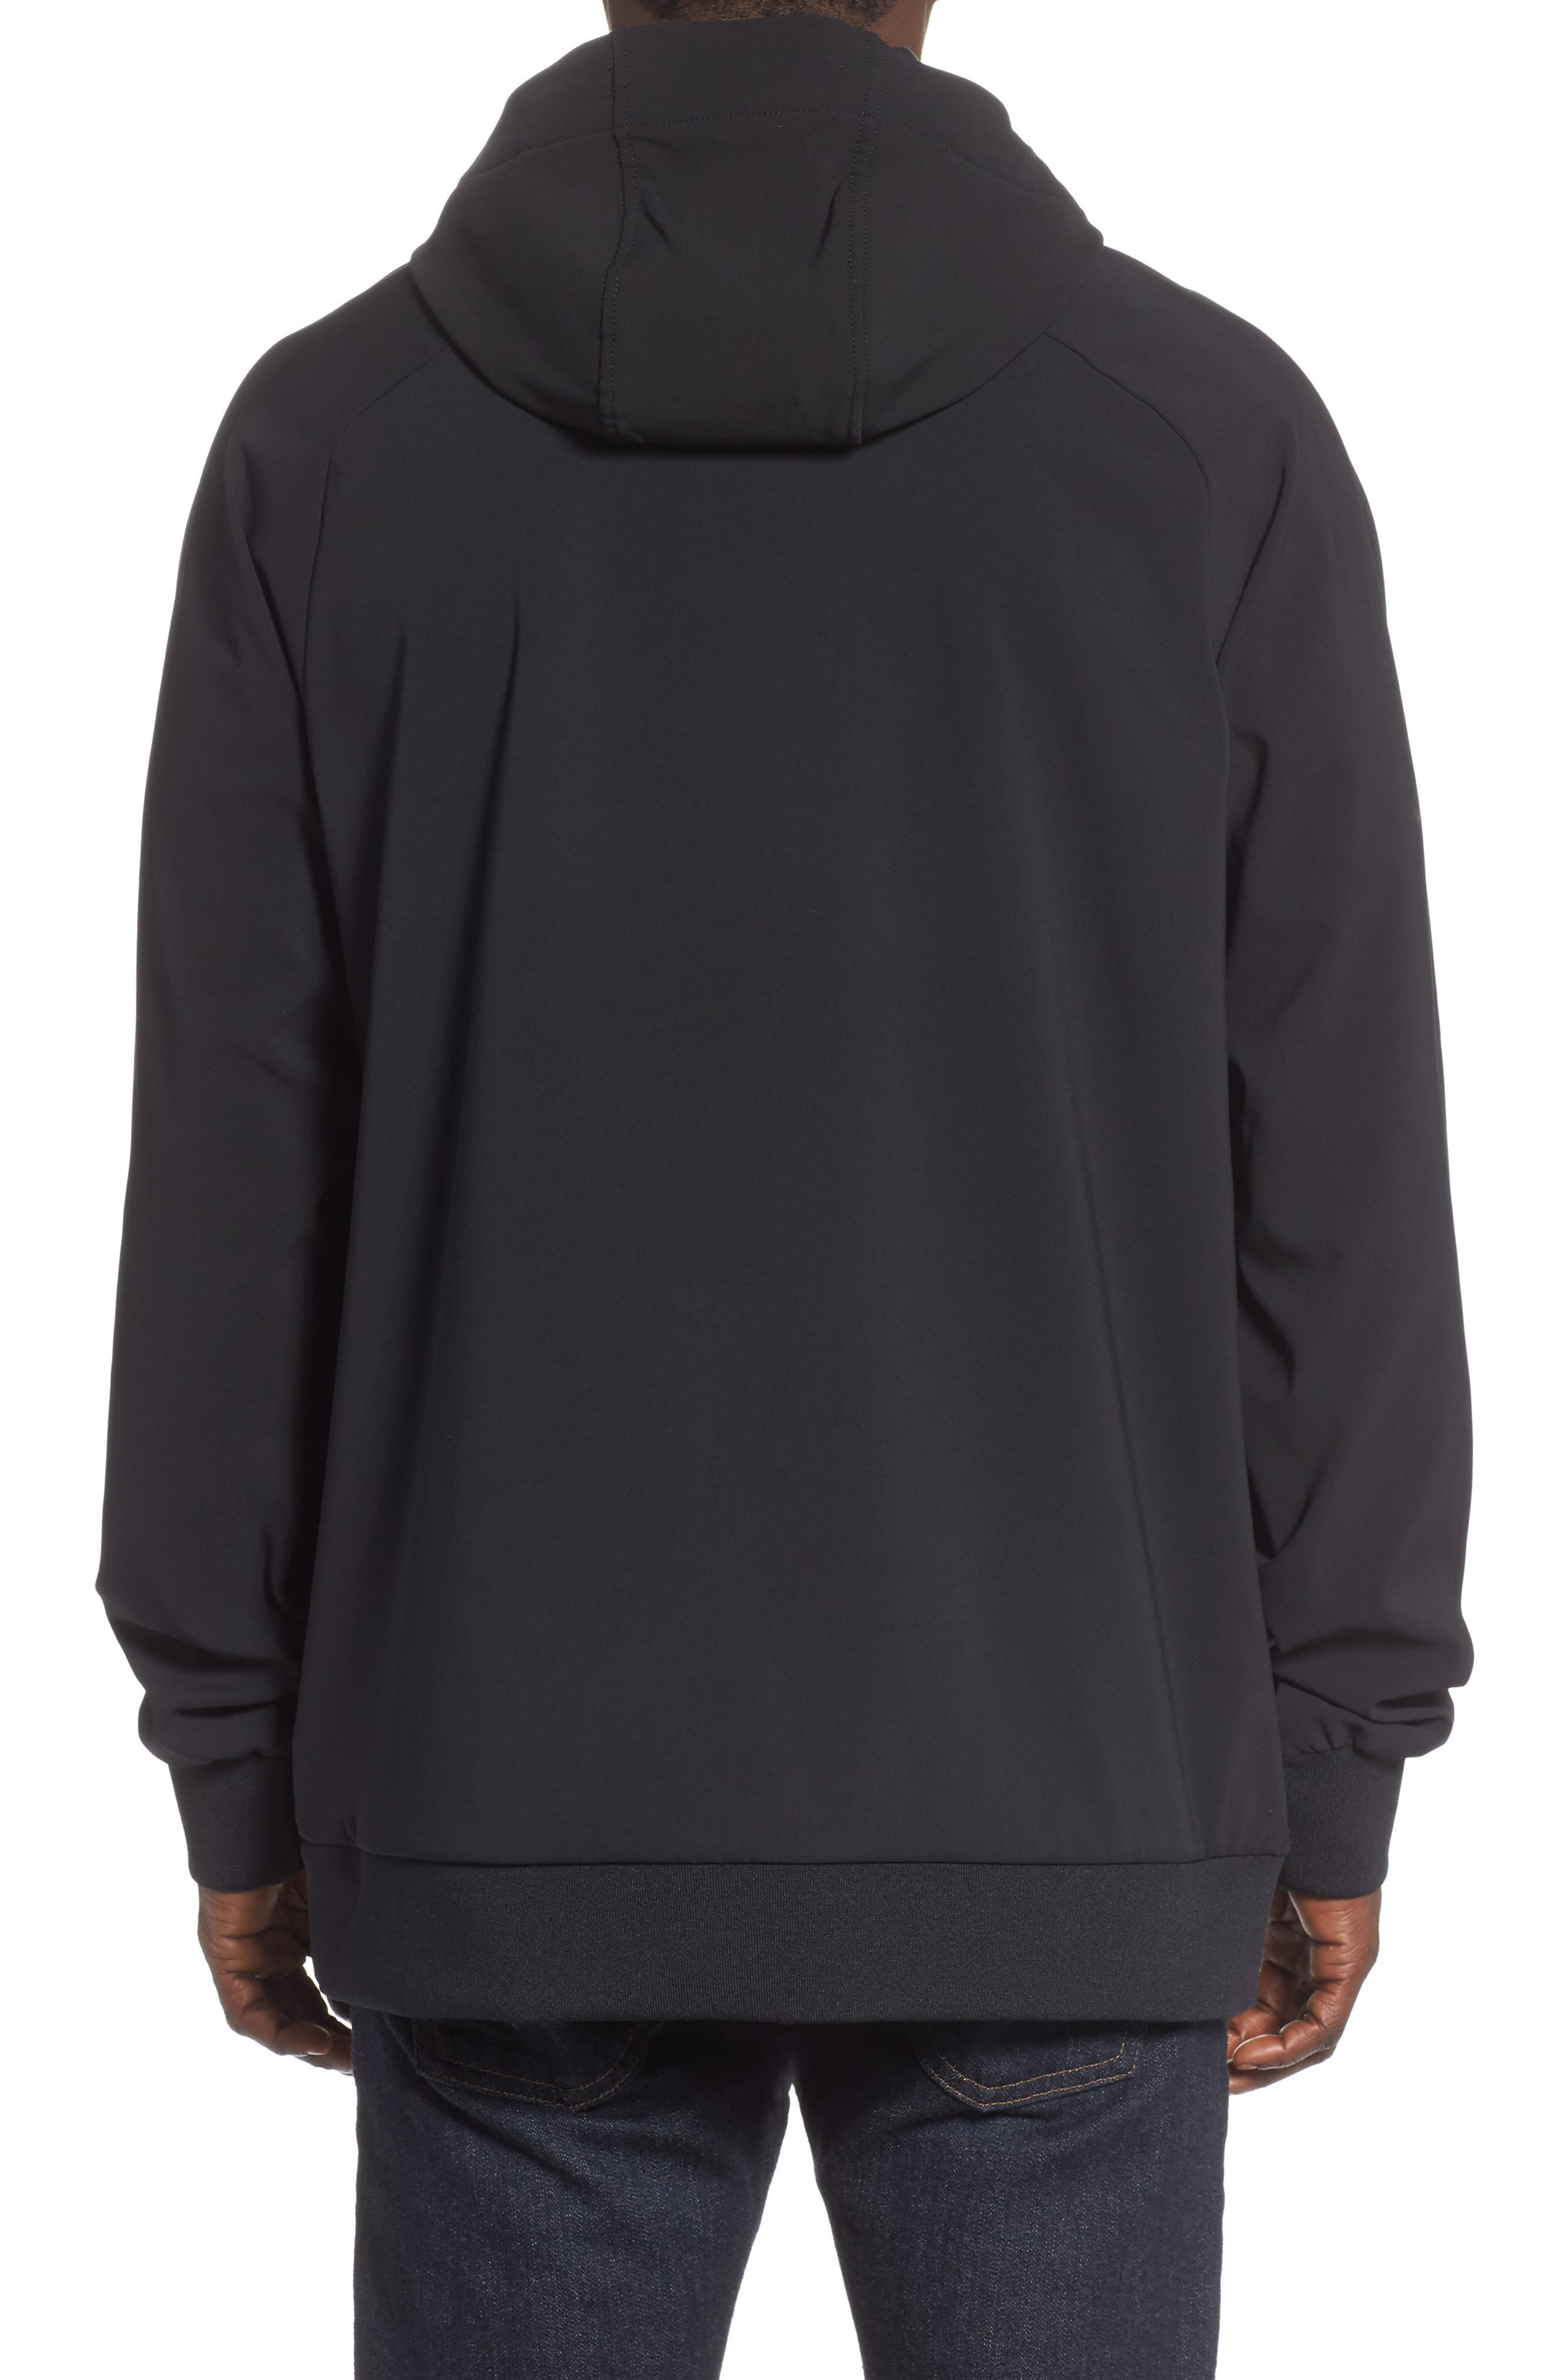 THE NORTH FACE, Tekno Pullover Hoodie, Alternate thumbnail 2, color, 001